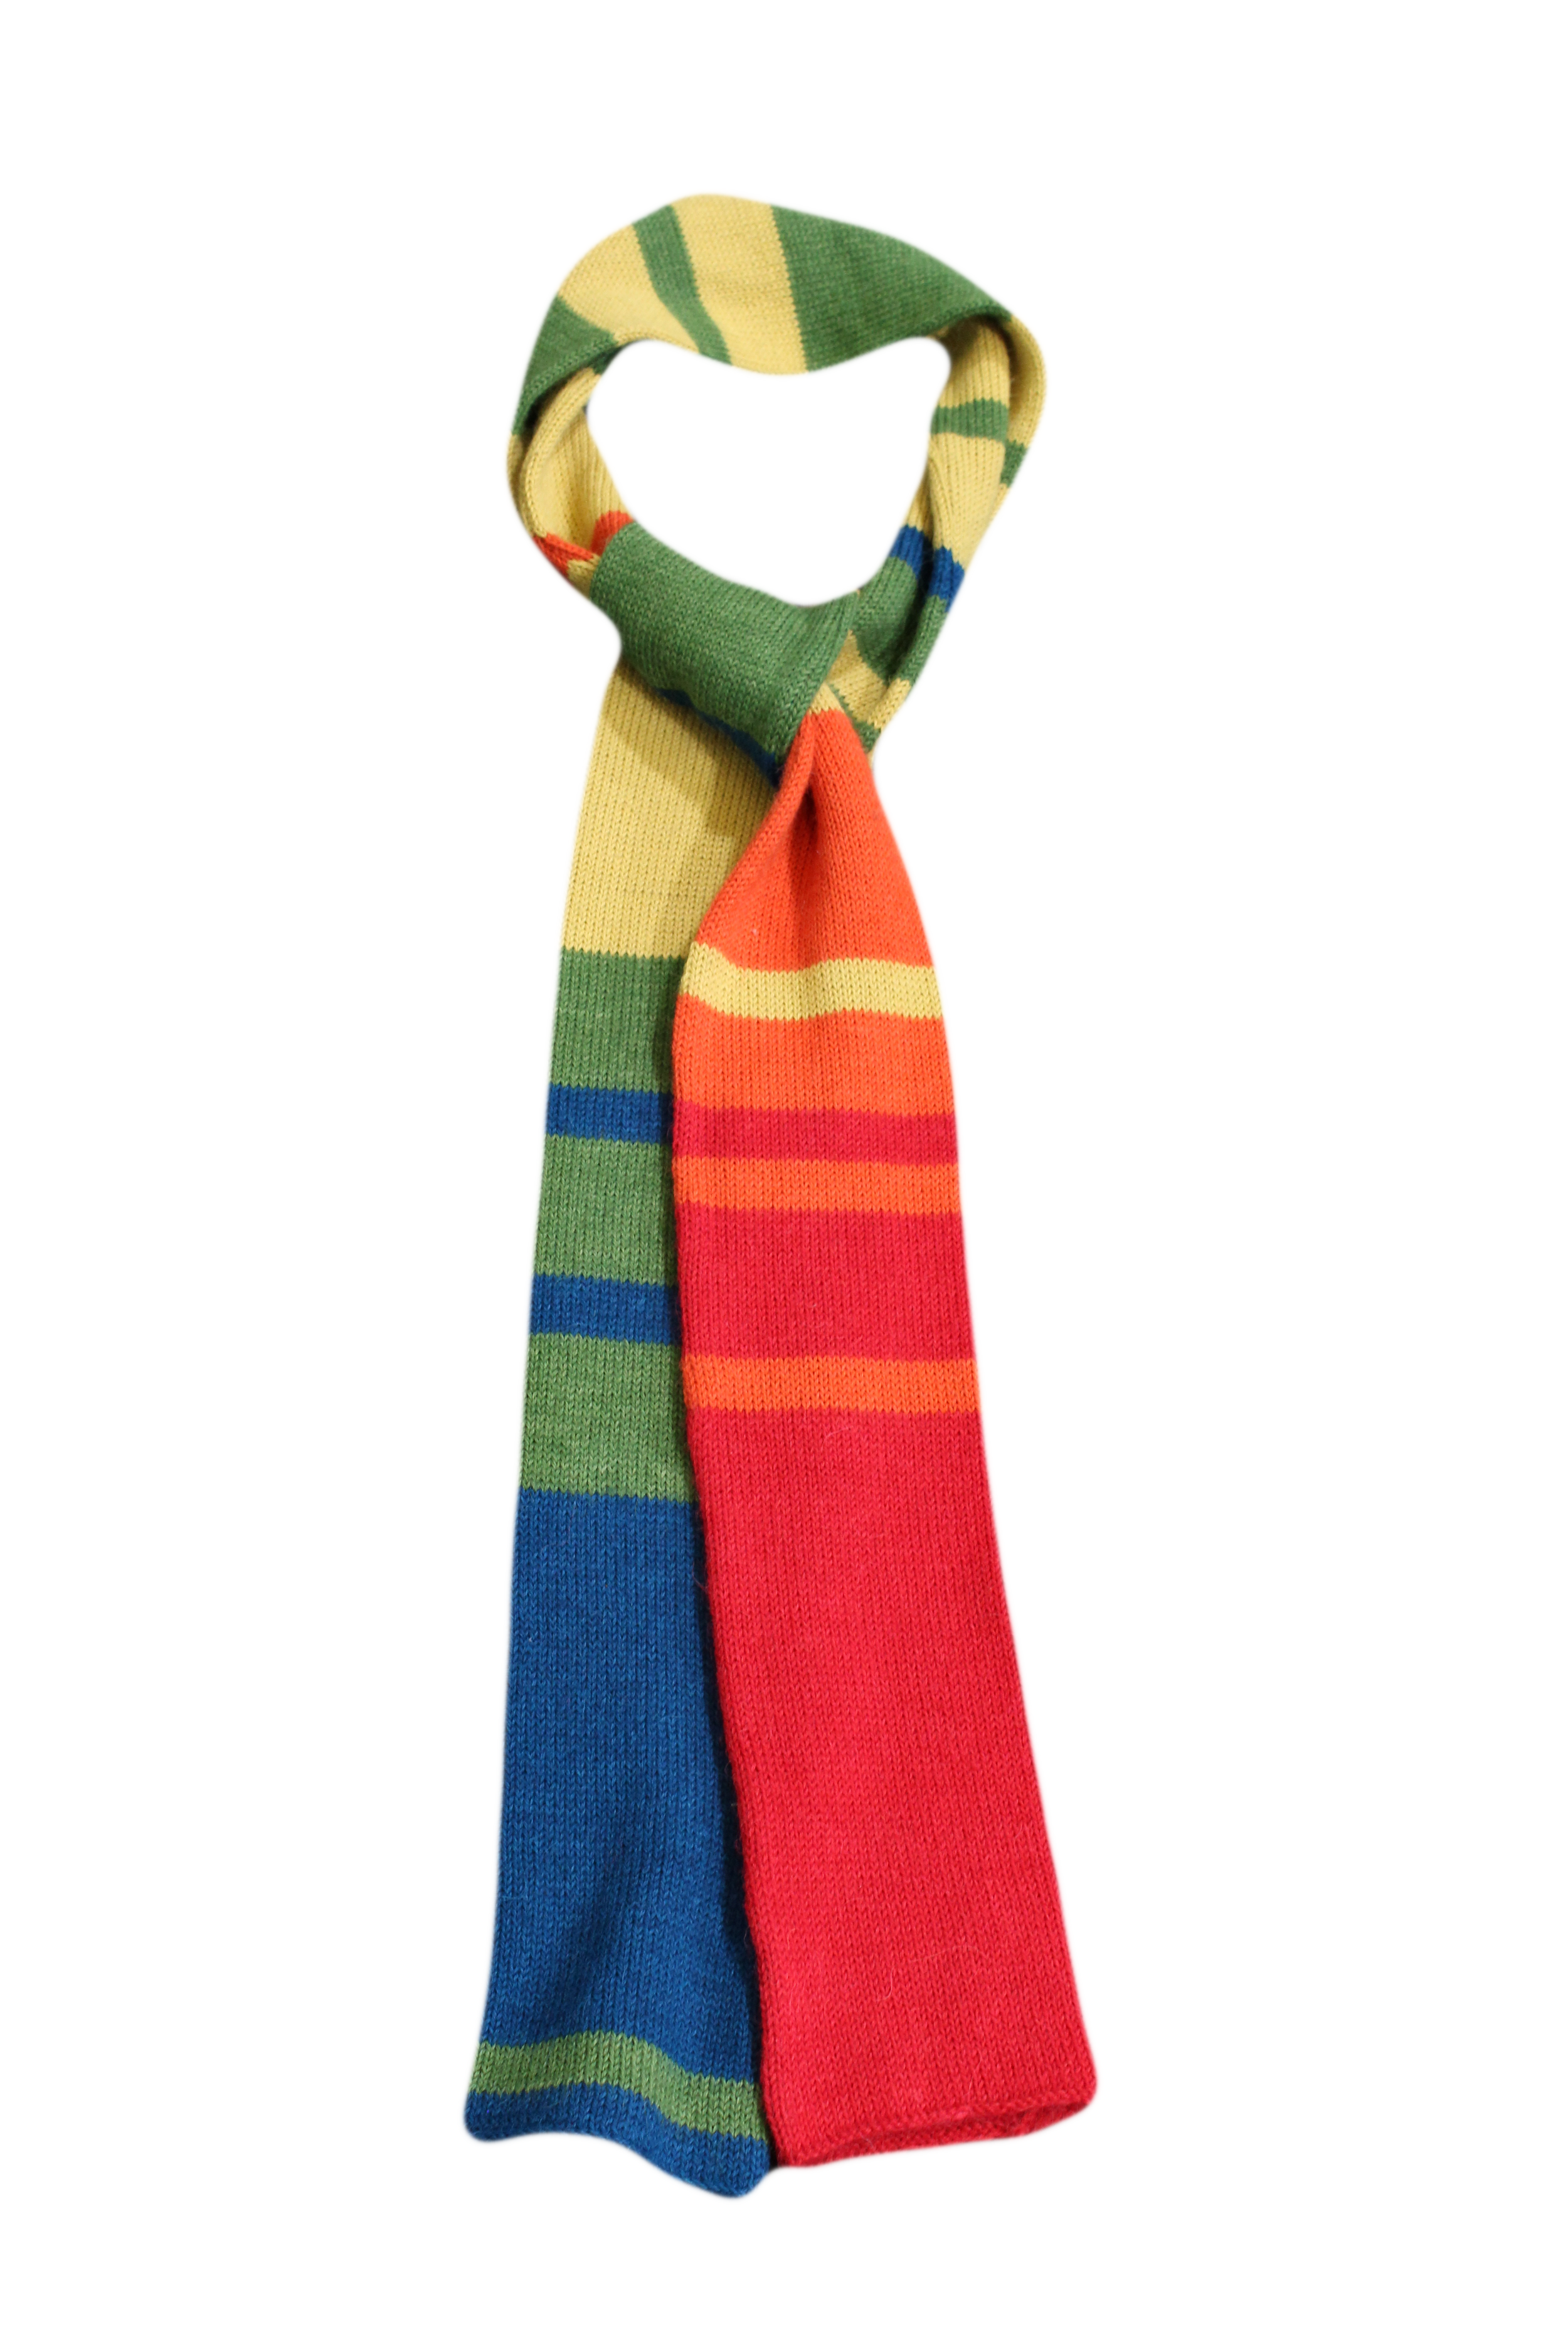 100 Years of Average Annual Global Surface Temperatures, Charted in a Toasty Scarf, 2015